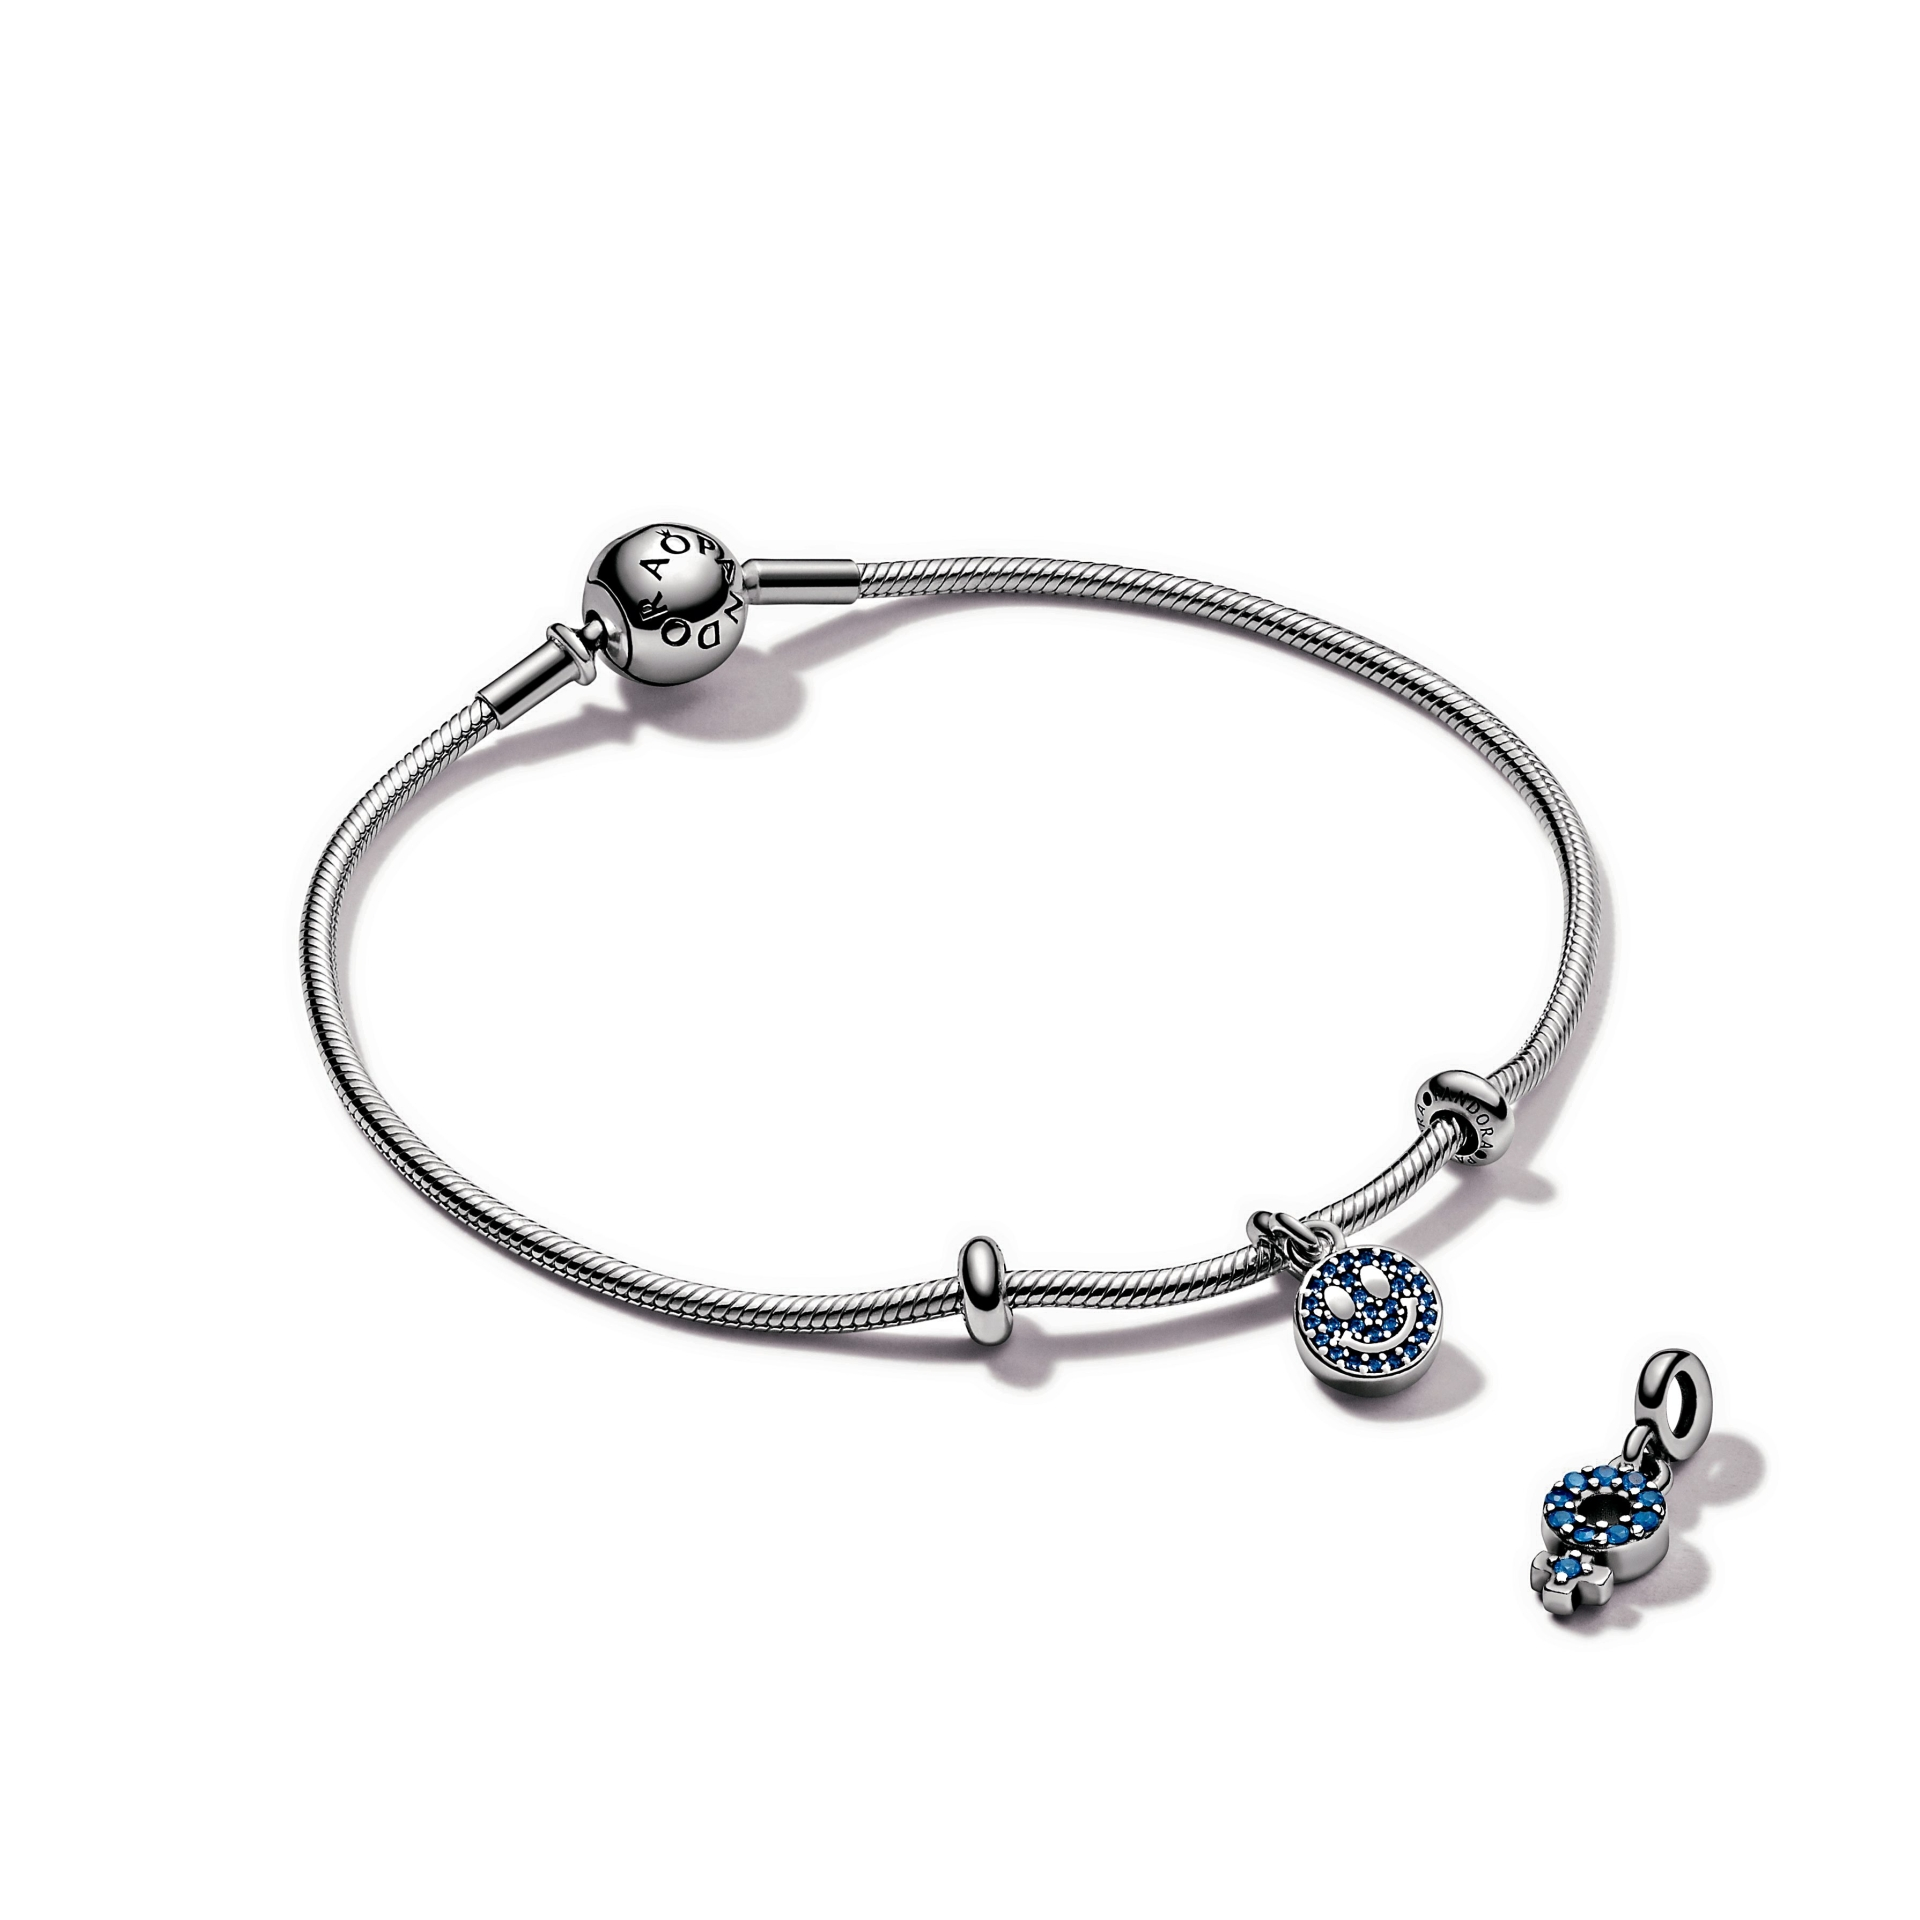 Beautiful charms, hand-finished with blue crystals.